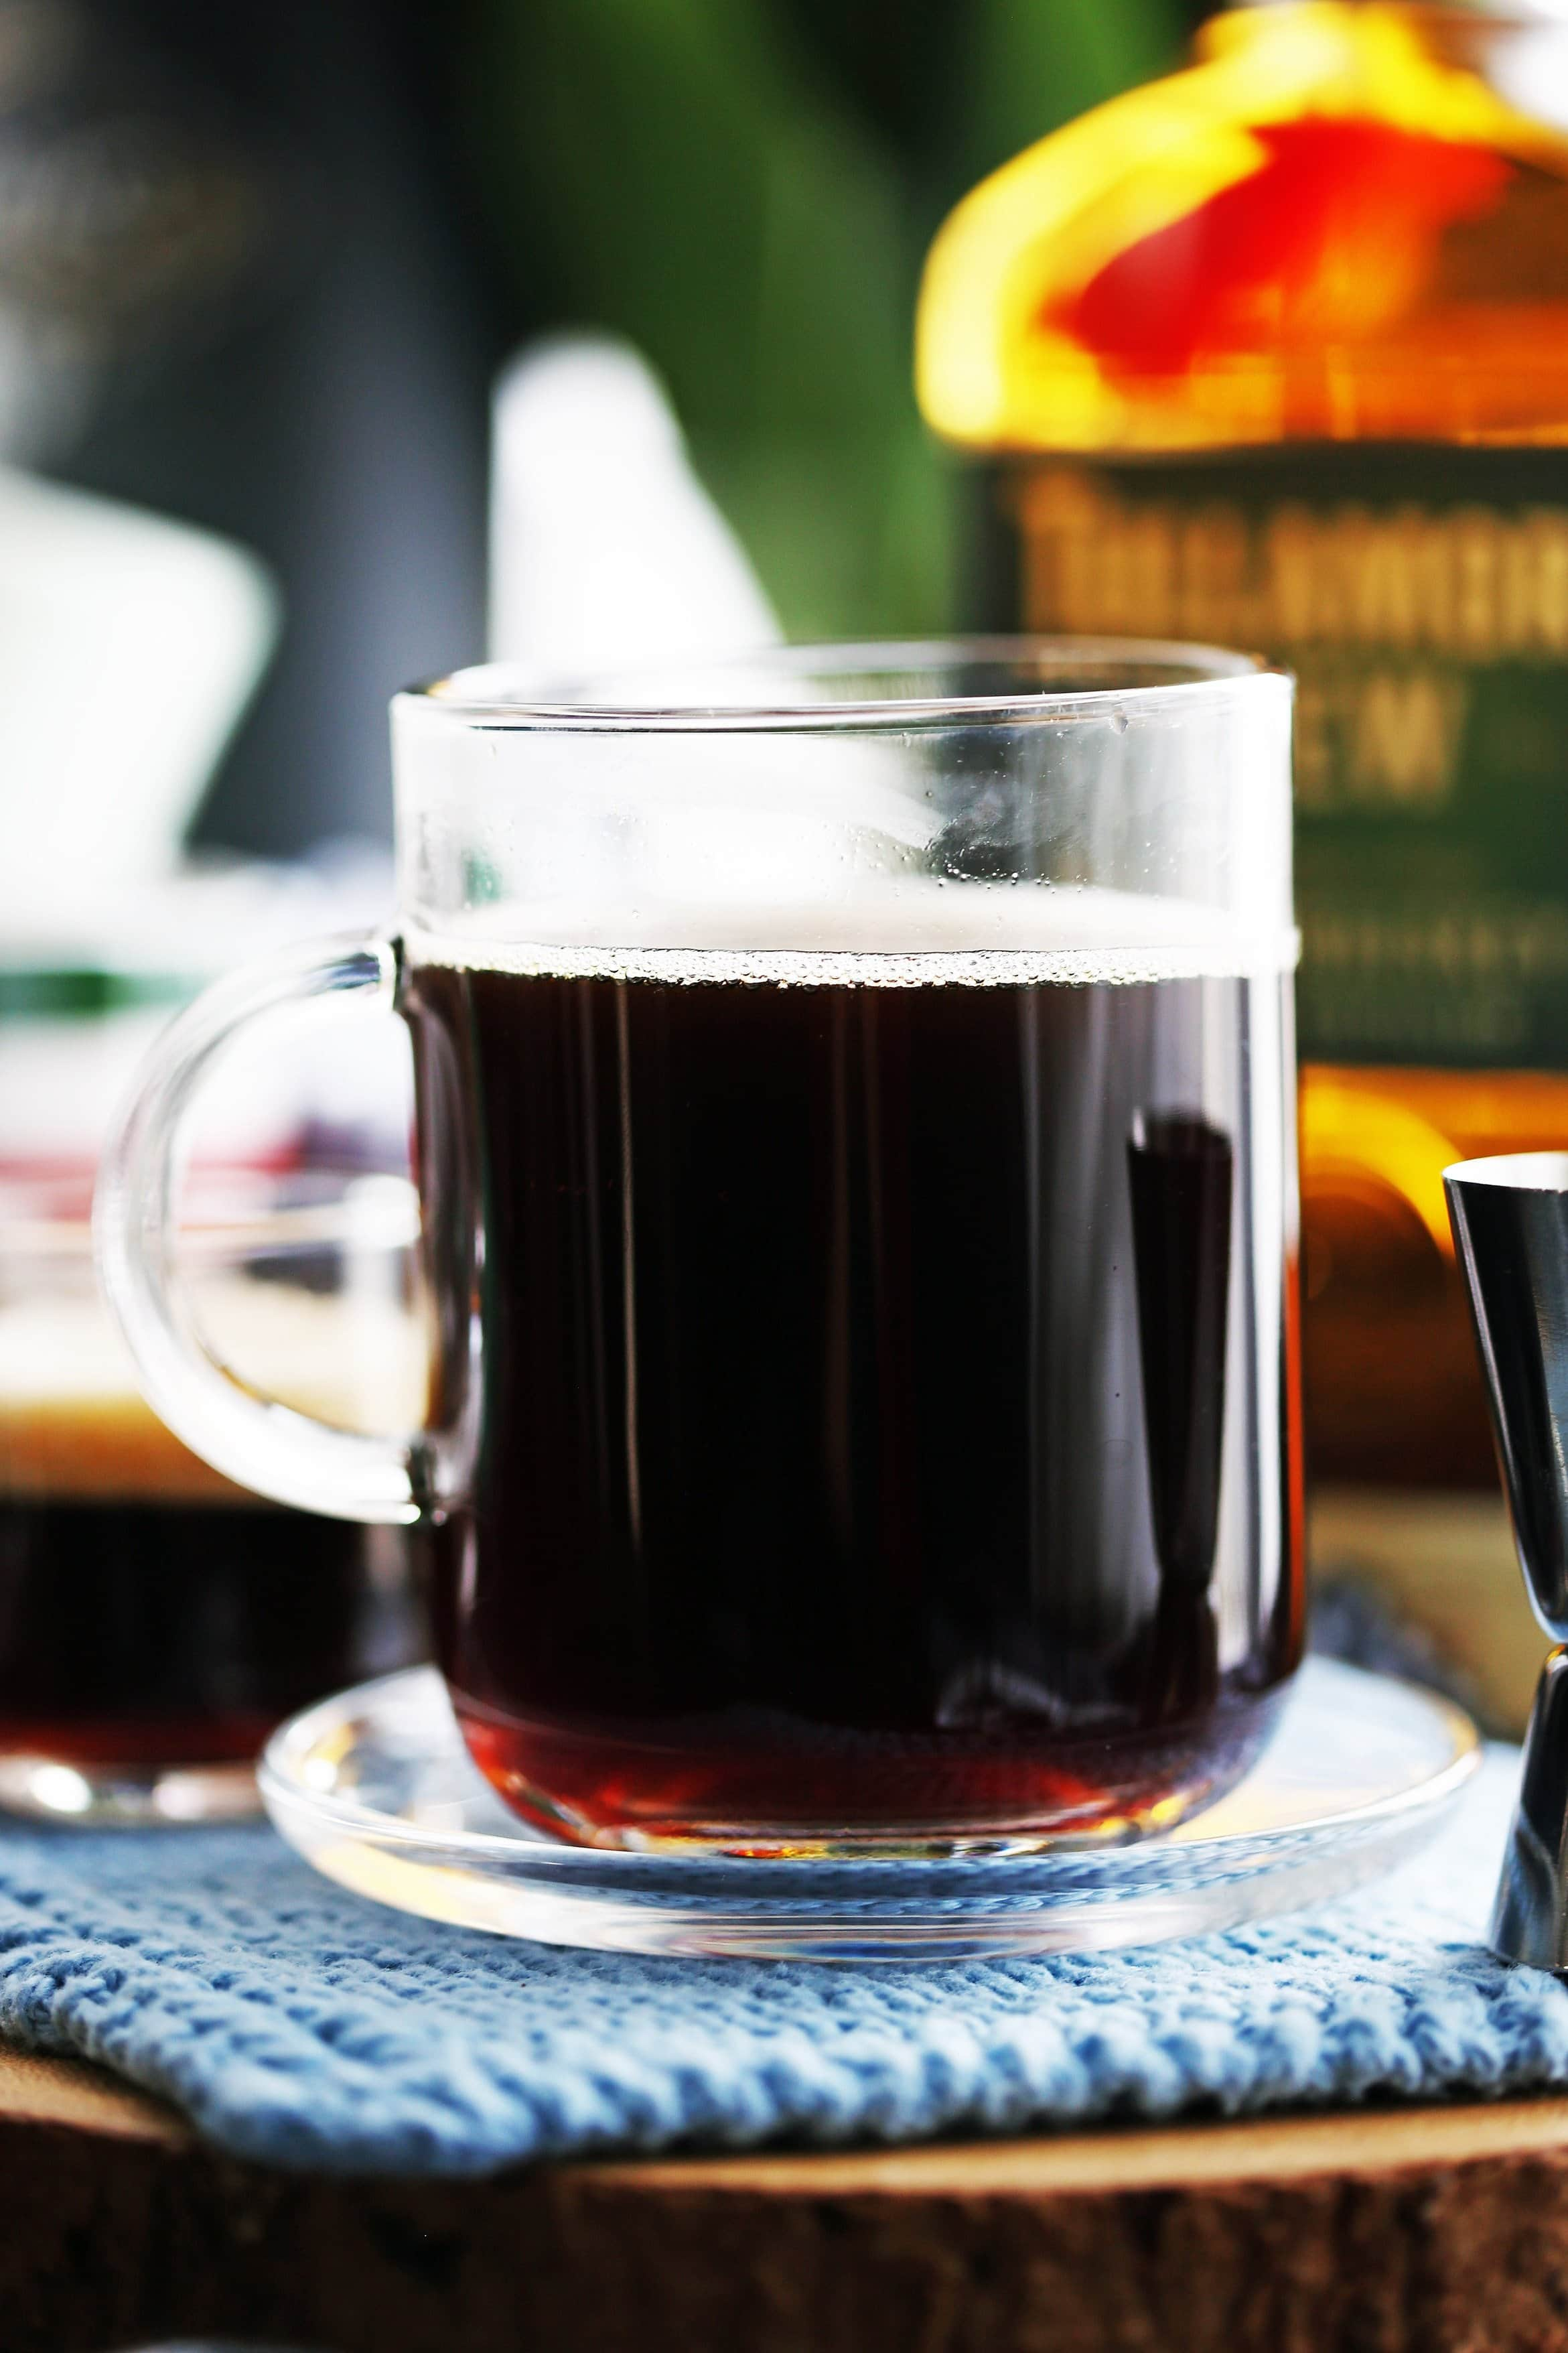 A side view of a glass mug filled with coffee and a small amount of maple syrup and Irish whiskey.